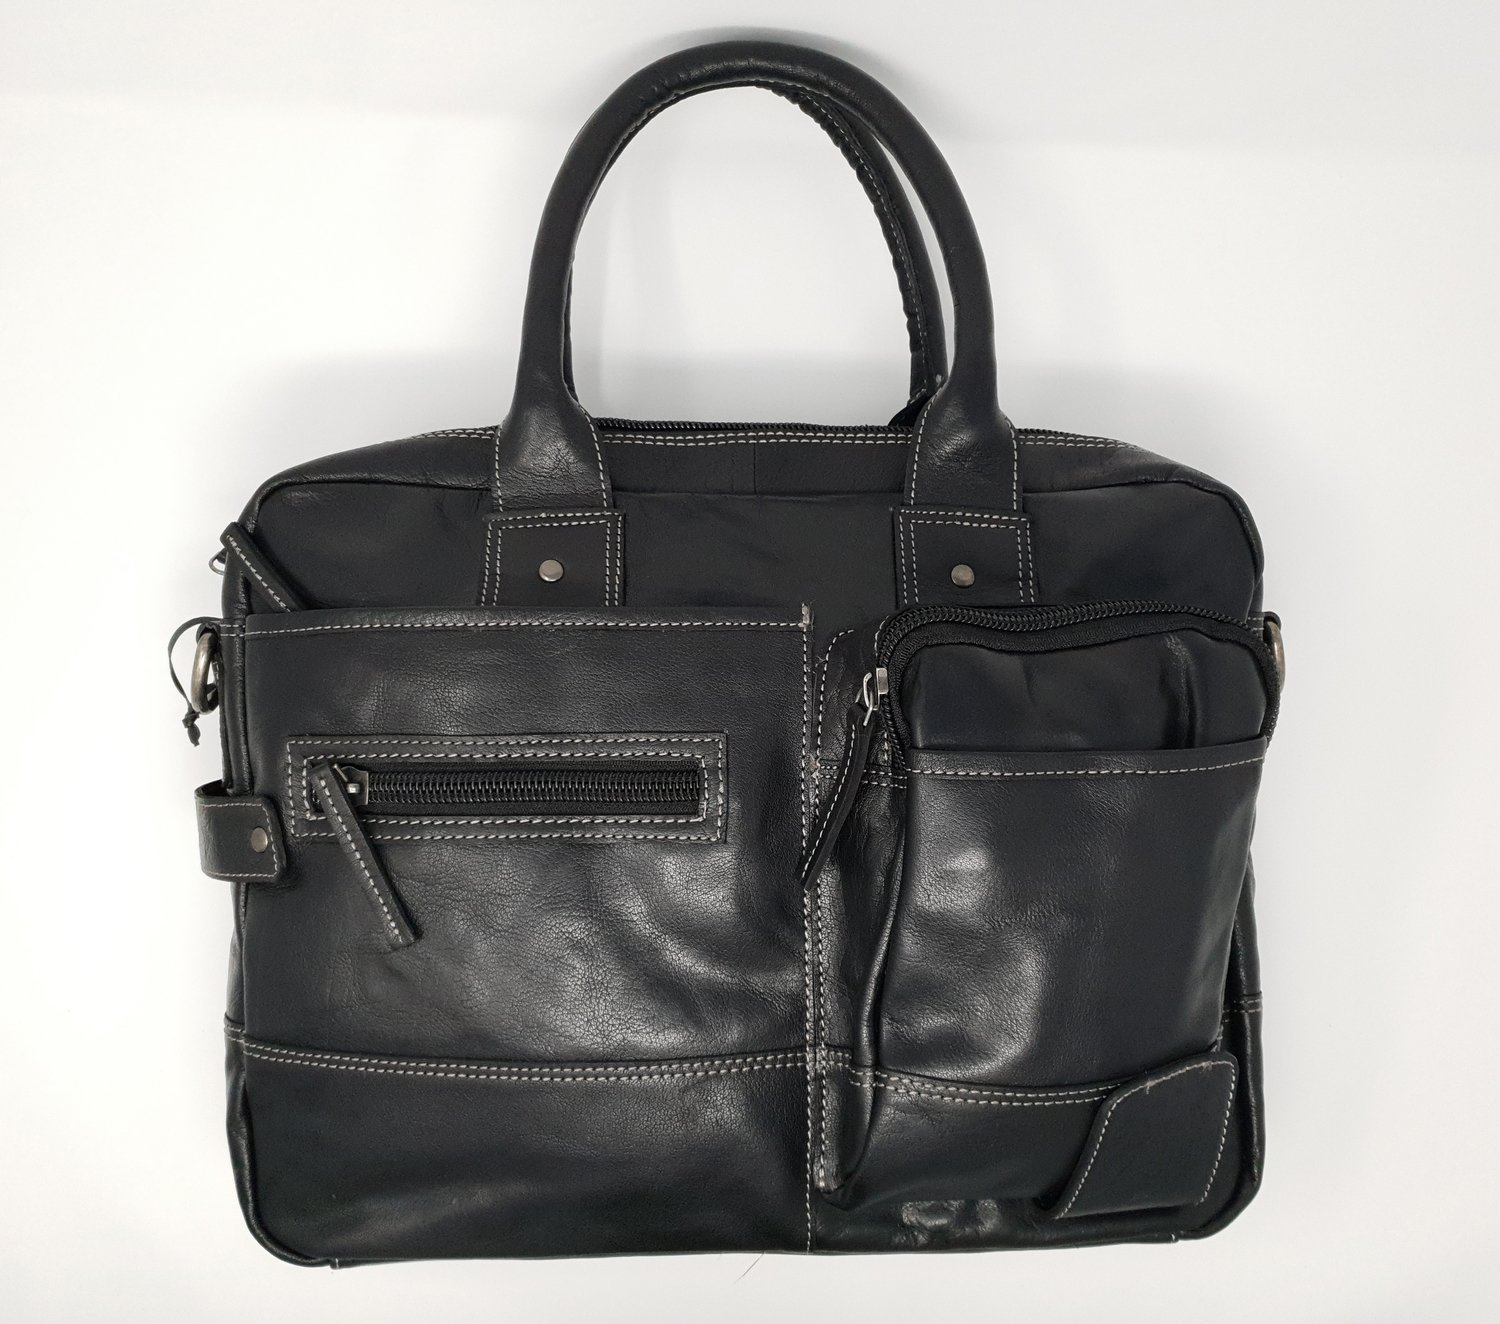 Business bag for men, black